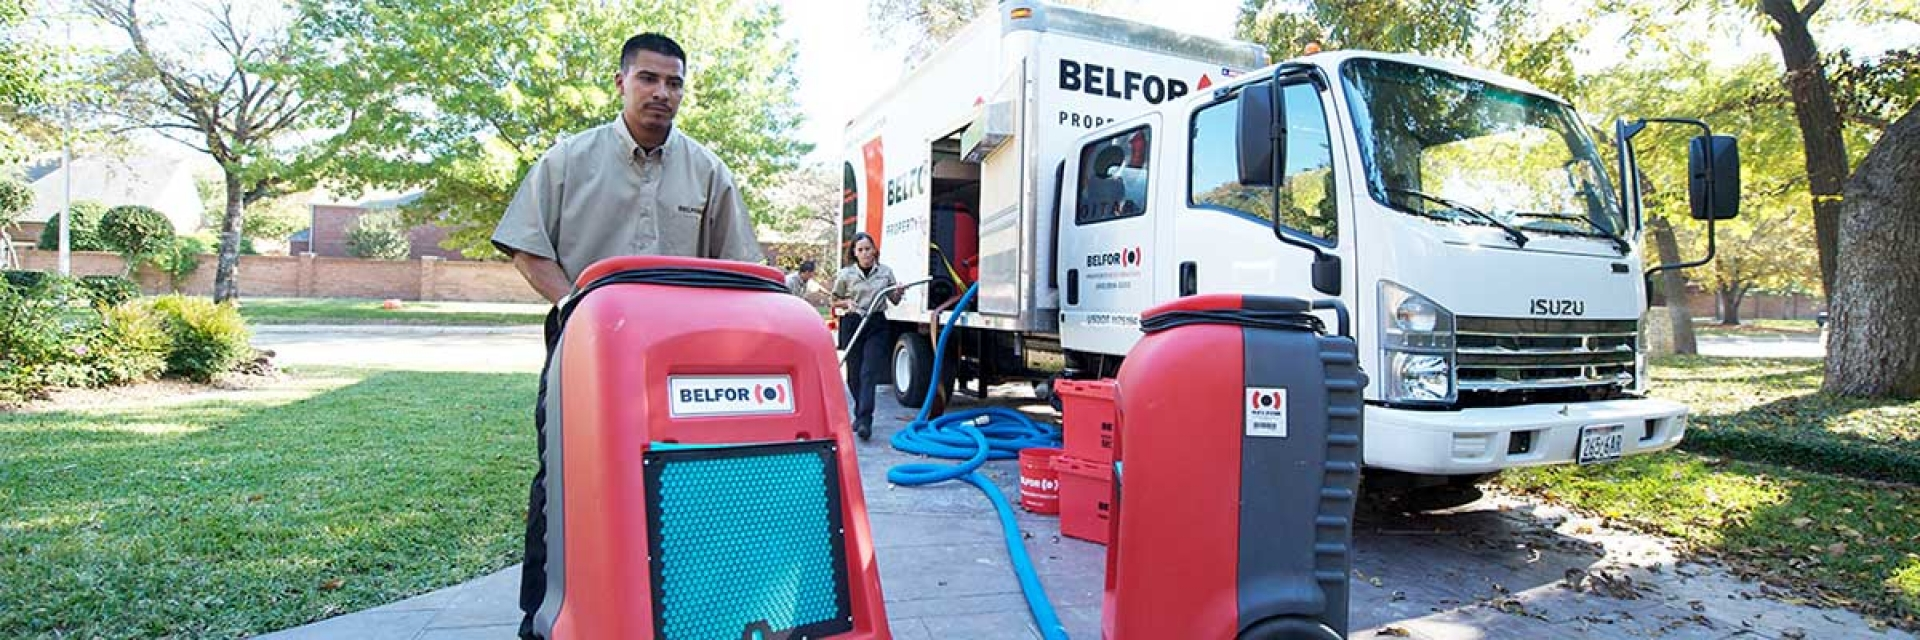 belfor-residential-water-team